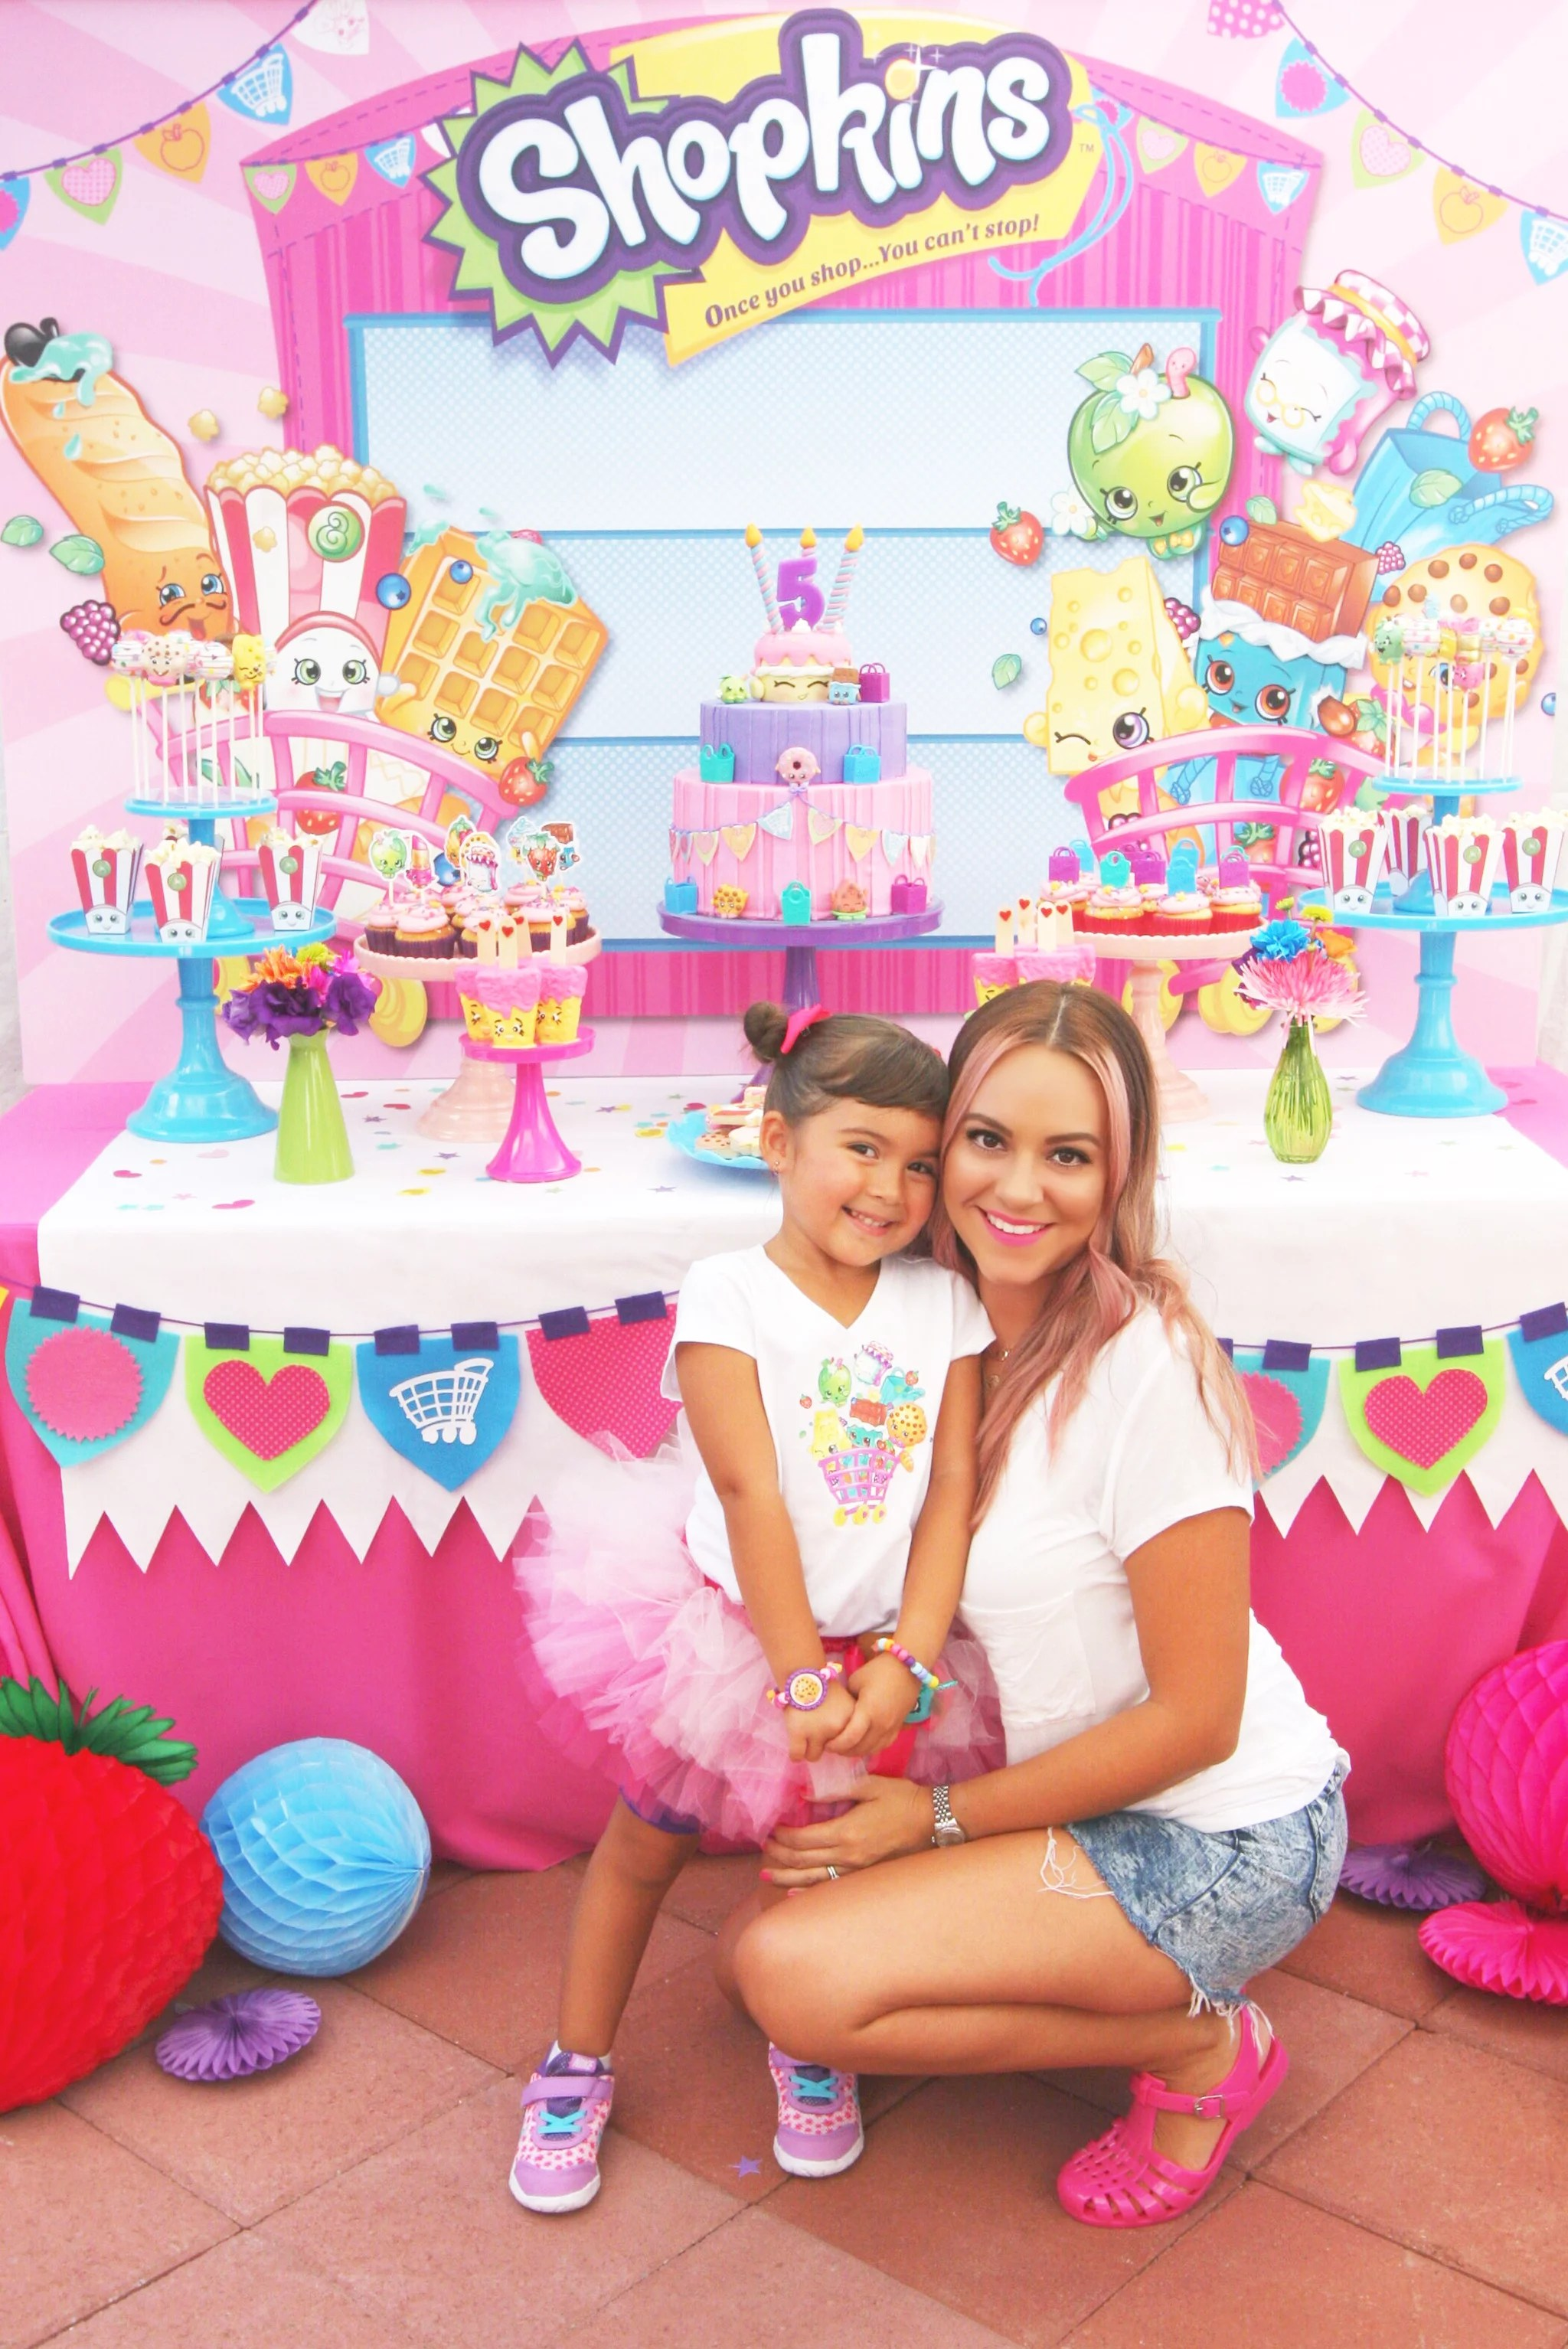 Baby Toddlers Kids Parenting This Shopkins Birthday Party Puts All Others To Shame Popsugar Family Photo 36